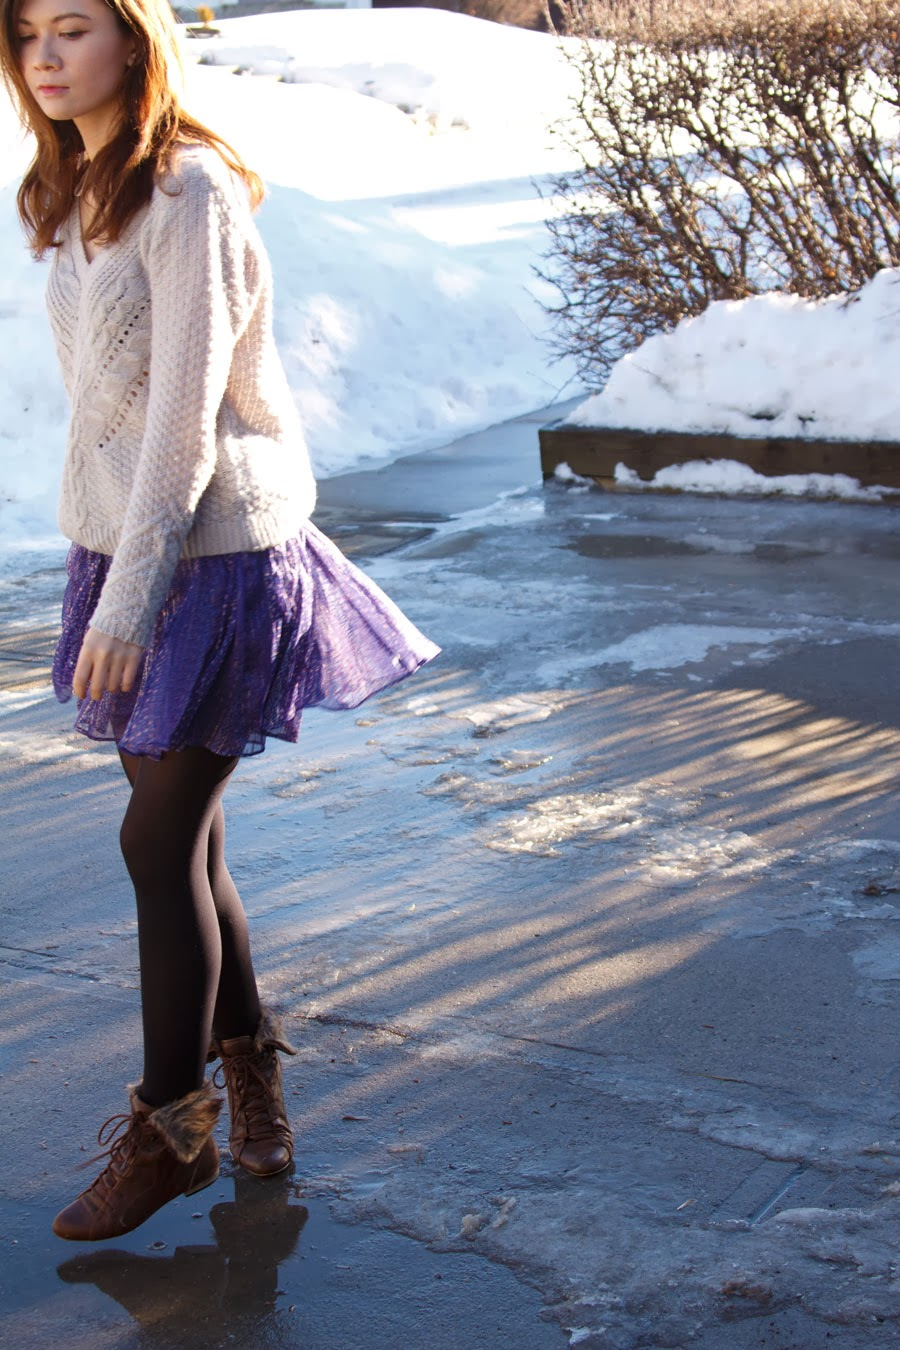 Winter Skirt, winter fashion, spring fashion, boots, american eagle, h&m, marc jacobs, michael kors watch